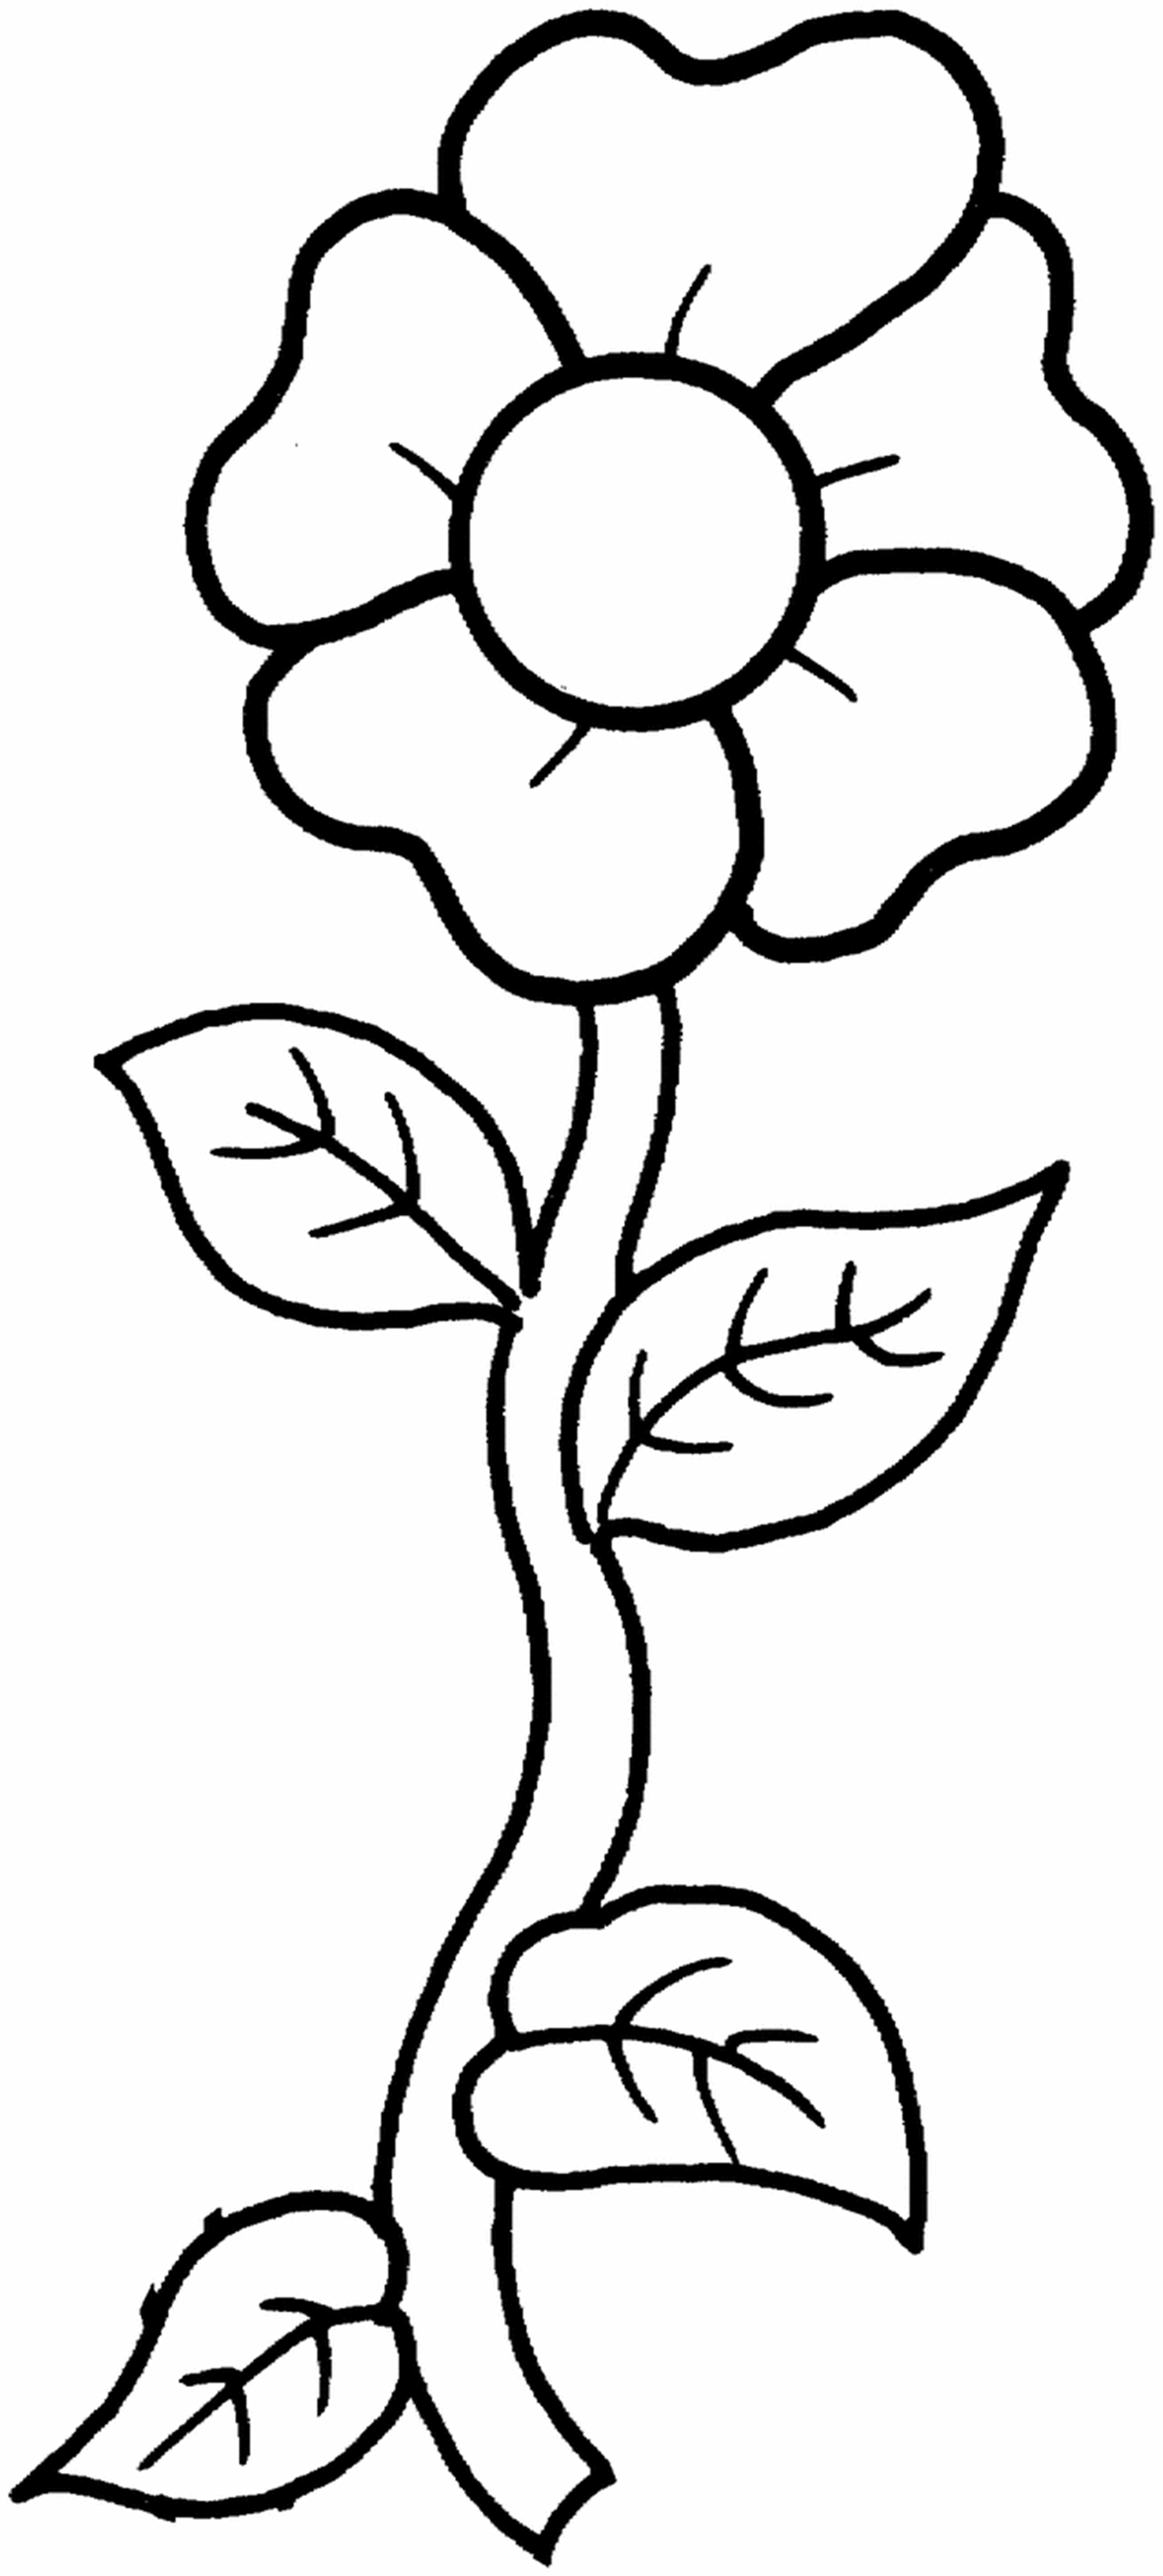 coloring sheets of flowers dahlia flower coloring pages download and print dahlia of sheets coloring flowers